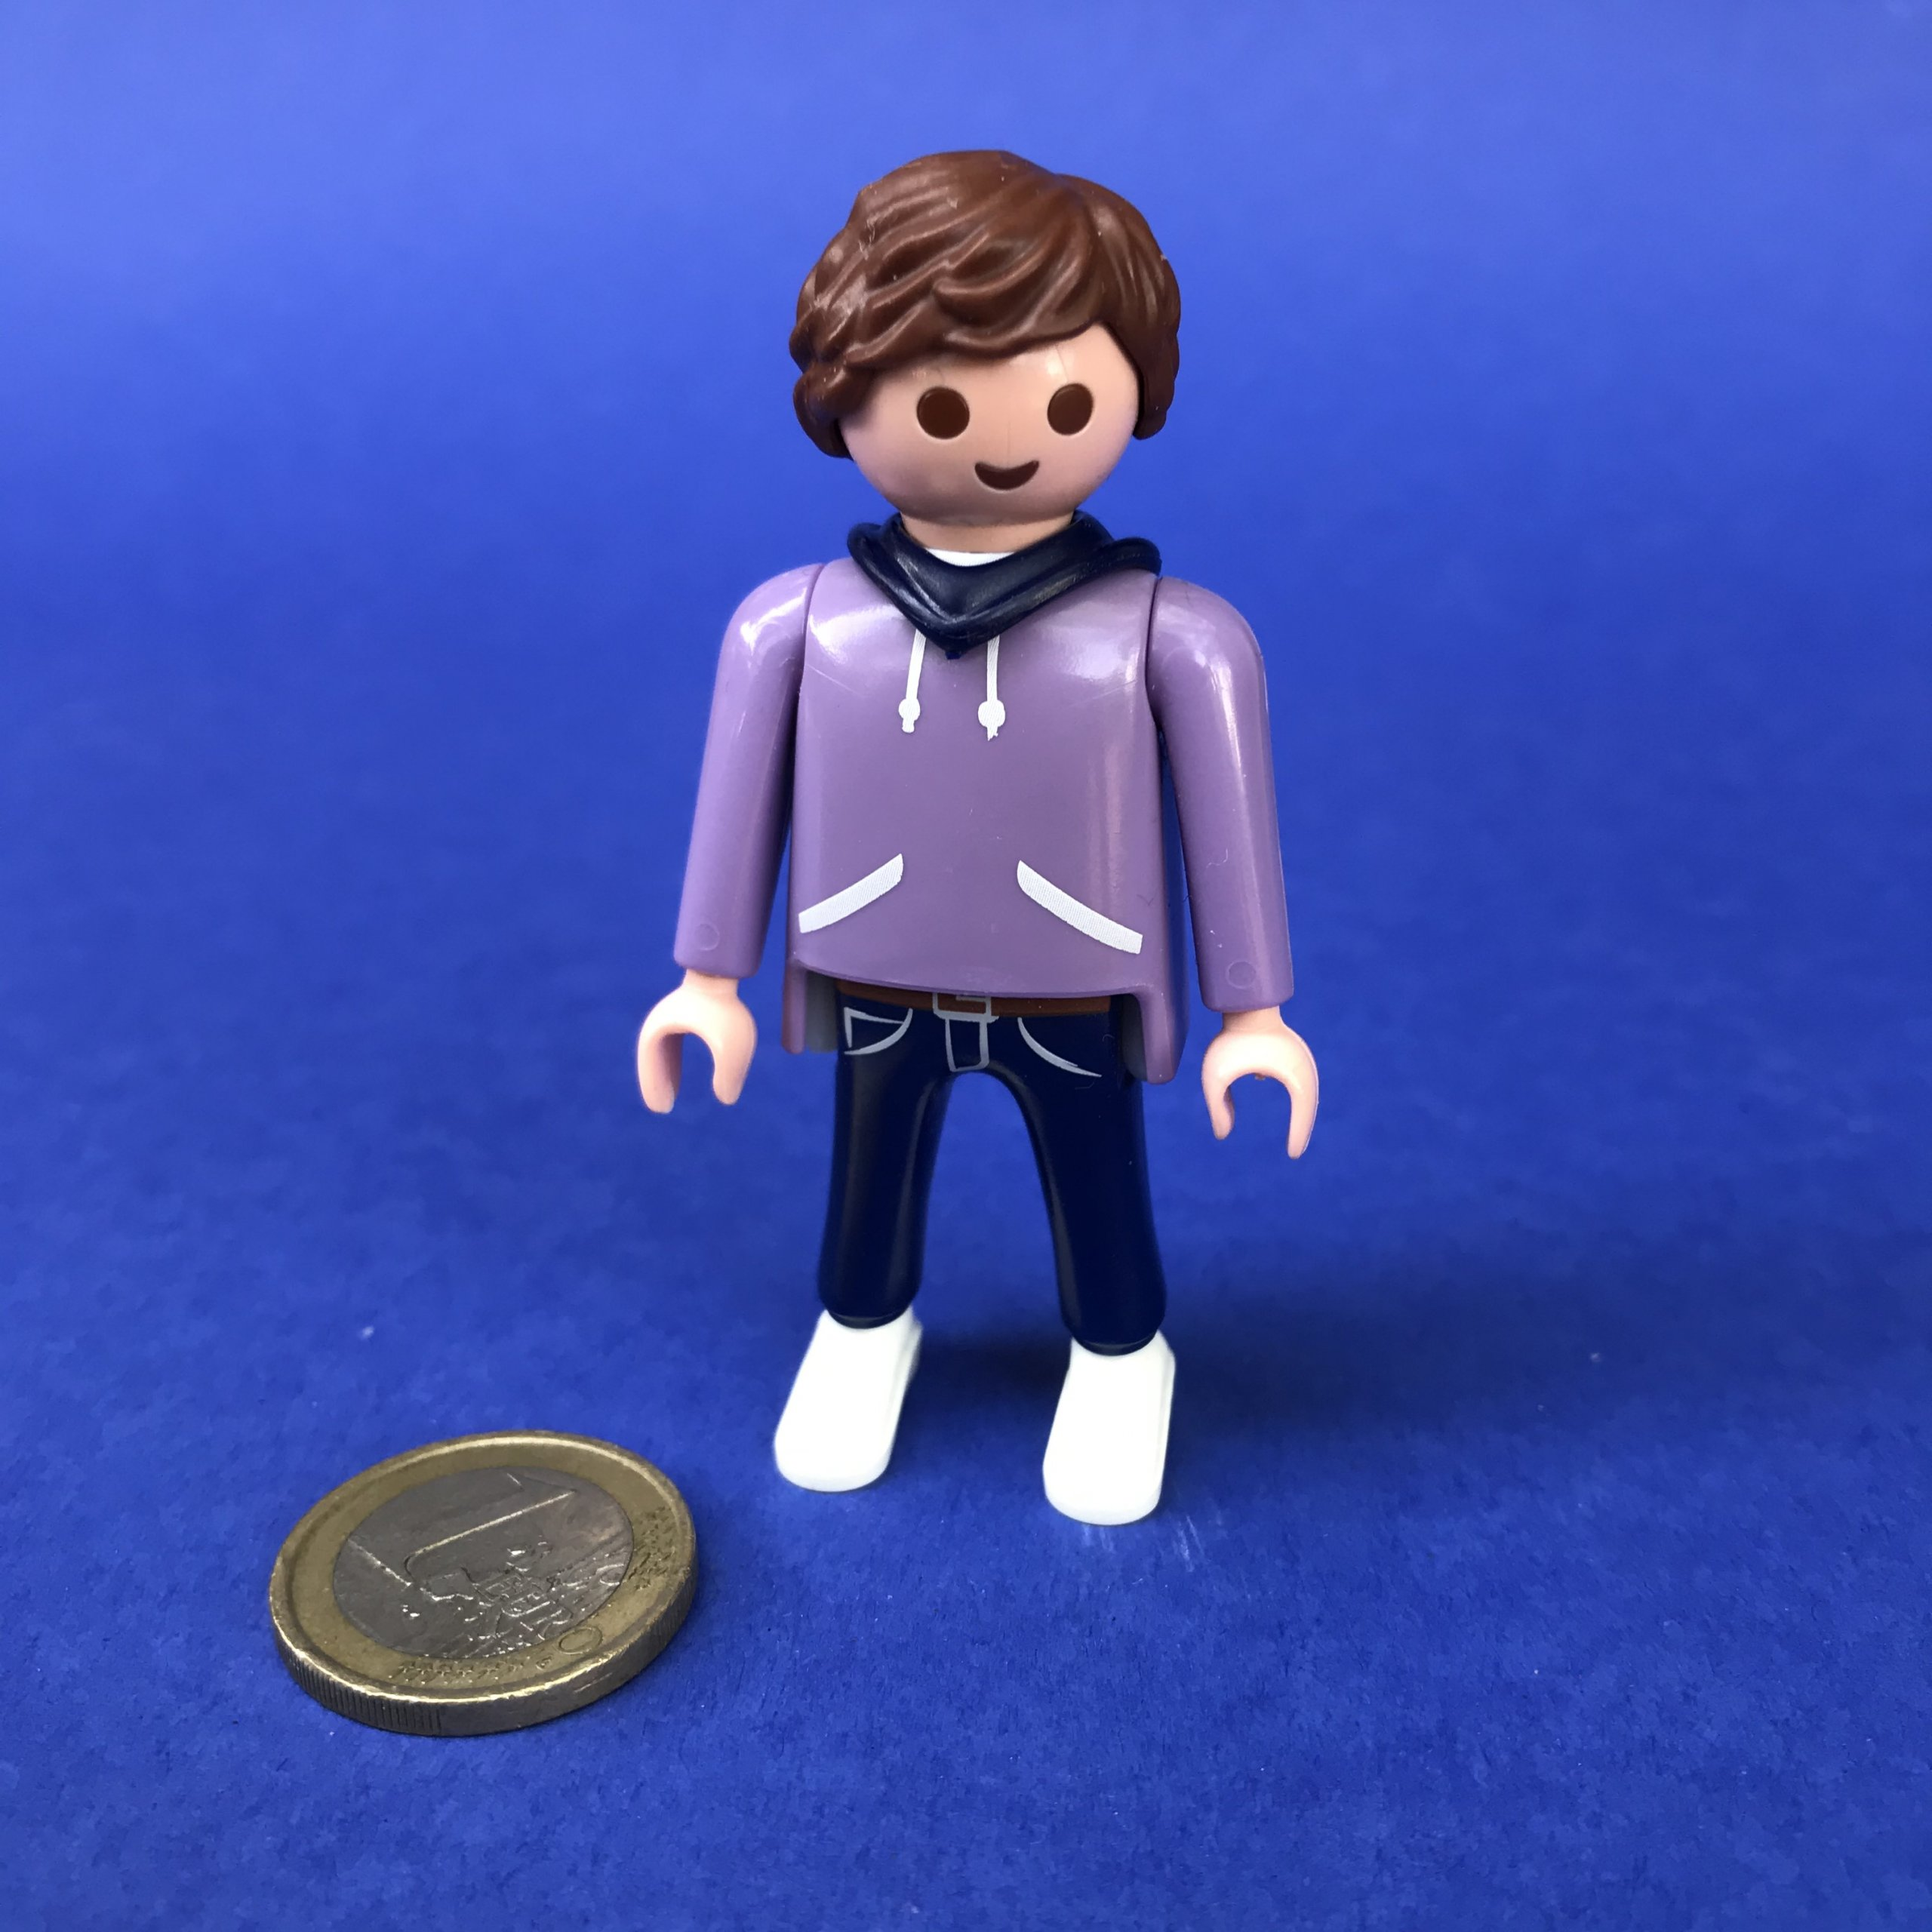 Playmobil-man